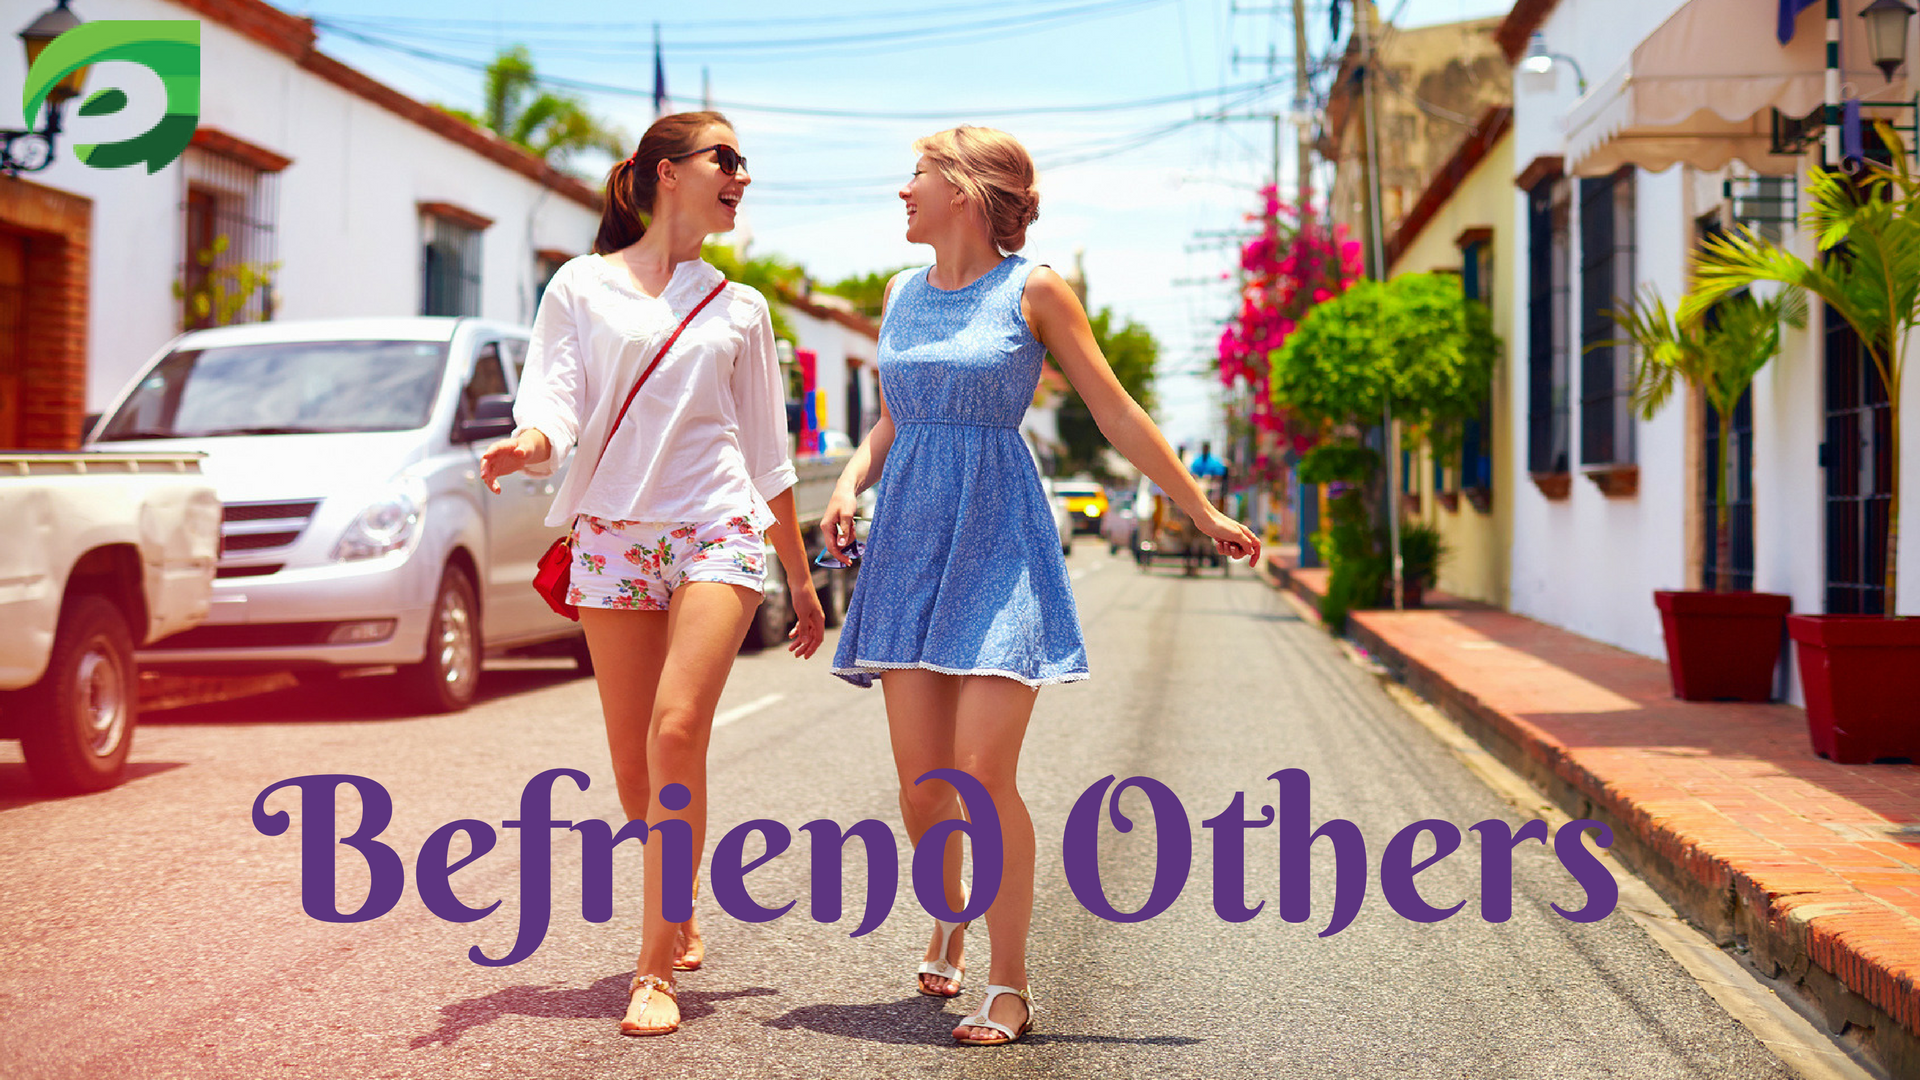 taking photos when traveling alone- befriends others